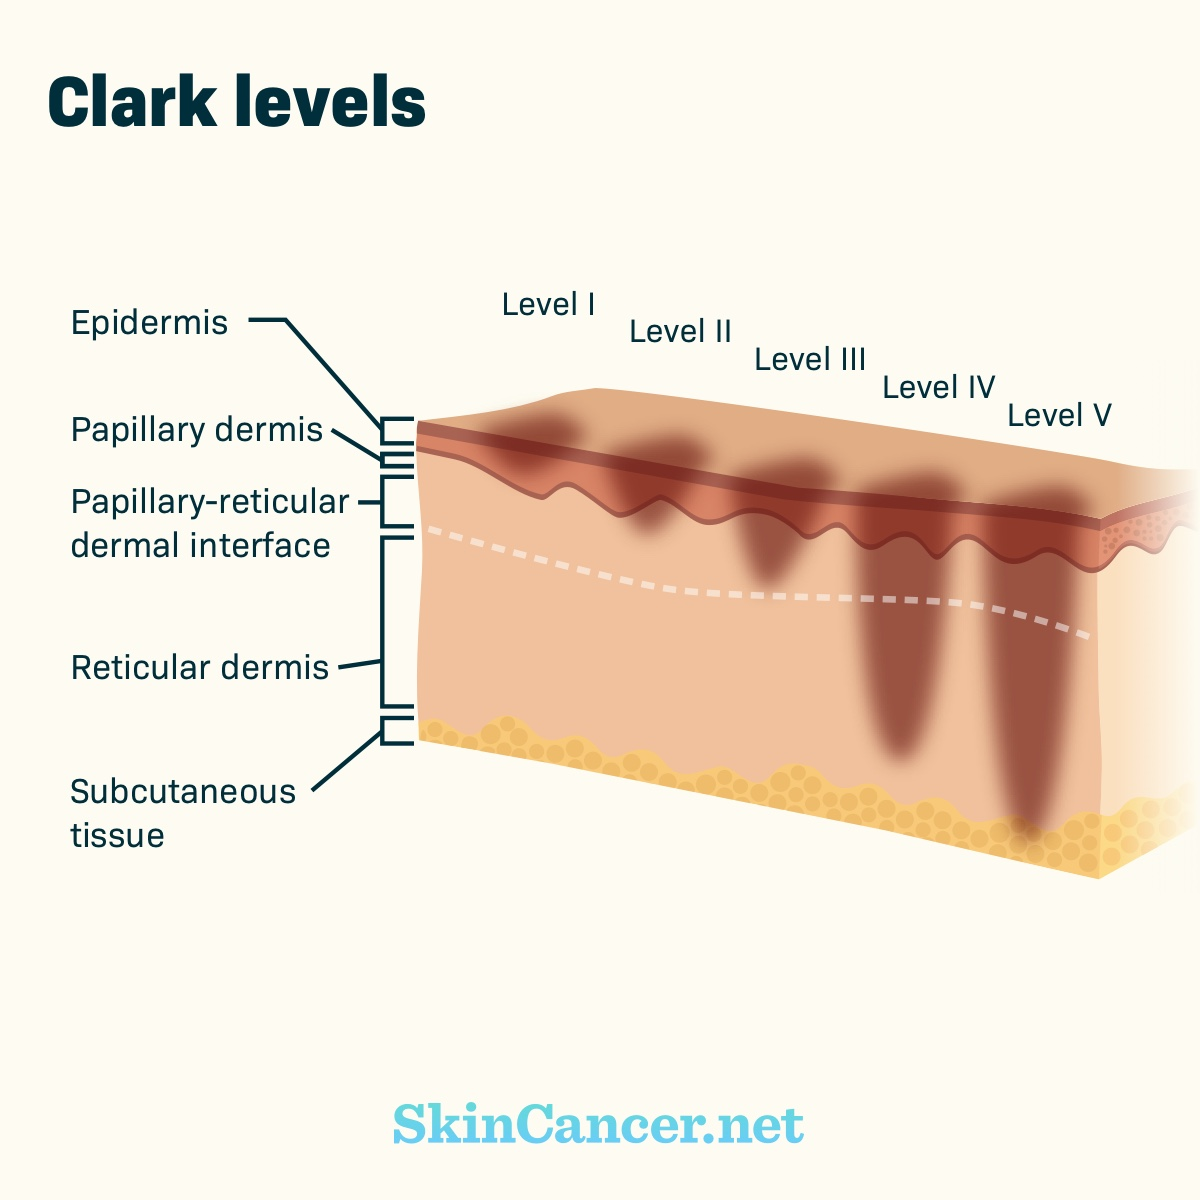 hight resolution of  of skin the tumor has invaded from the top layer of the skin level i to invasion of the tissue under the skin or subcutaneous tissue level v 4 8